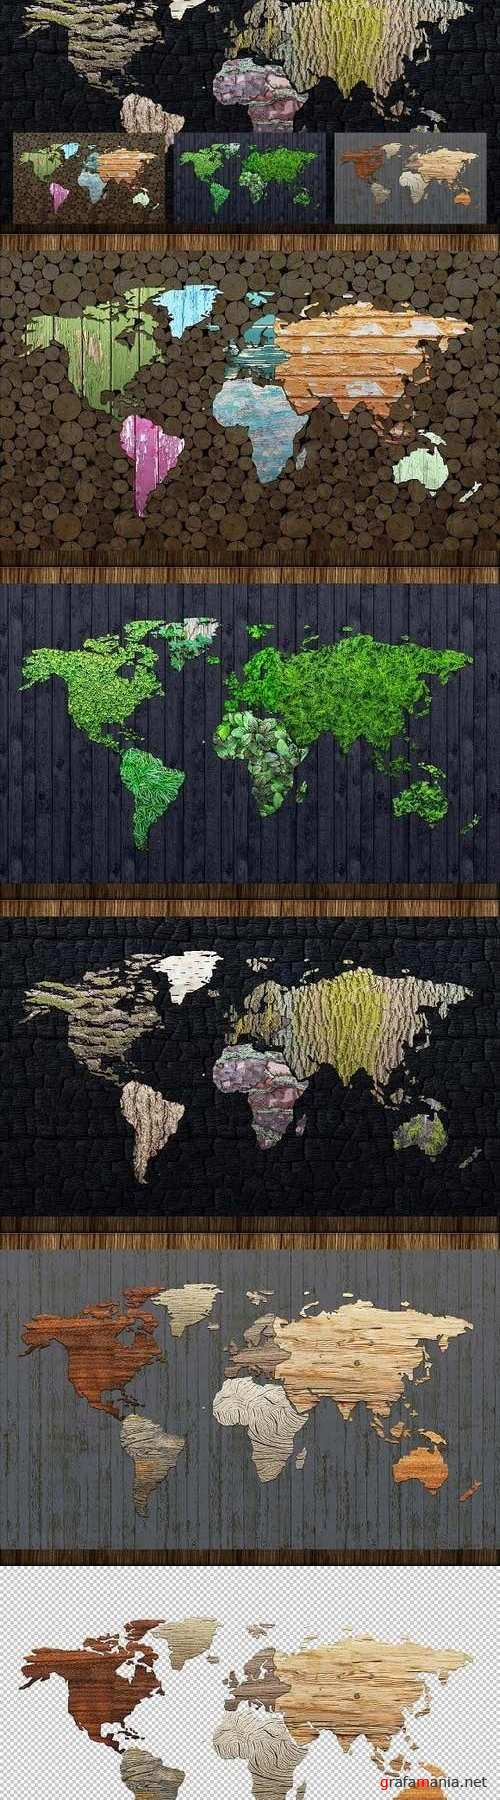 Wooden World Map Extended License 1285039